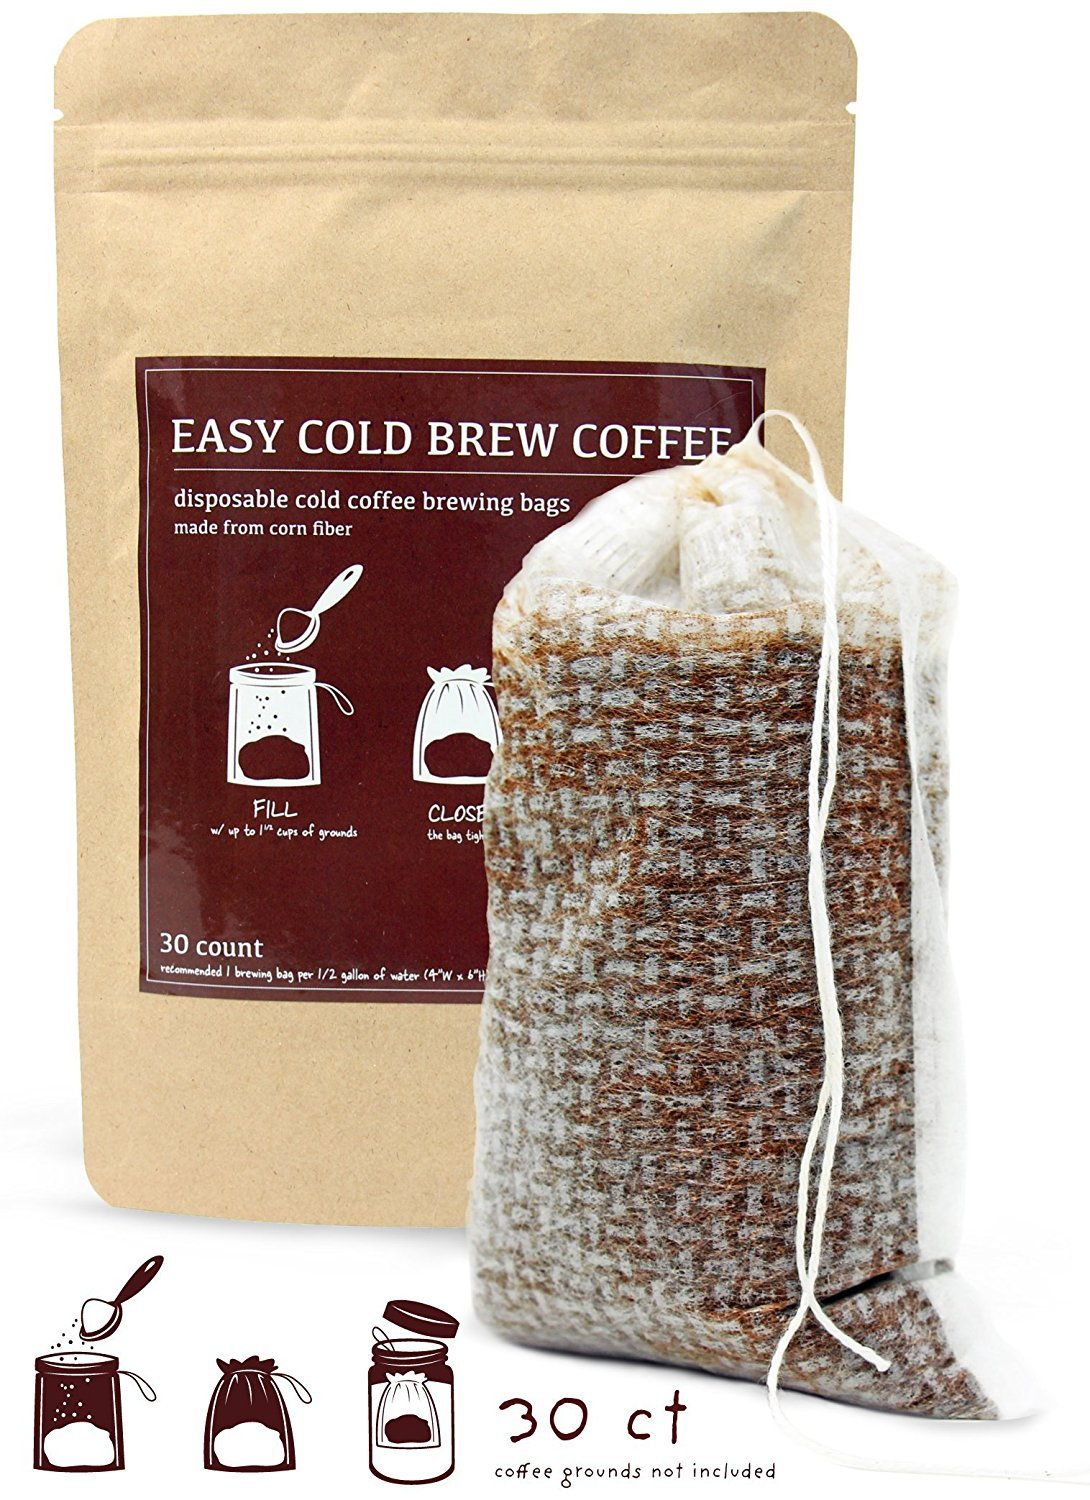 No Mess Cold Brew Coffee Filters - Easy, Single Use Filter Sock Packs, Disposable, Fine Mesh Brewing Bags for Concentrate, Iced Coffee Maker, French/Cold Press Kit, Hot Tea in Mason Jar or Pitcher Standard Modern